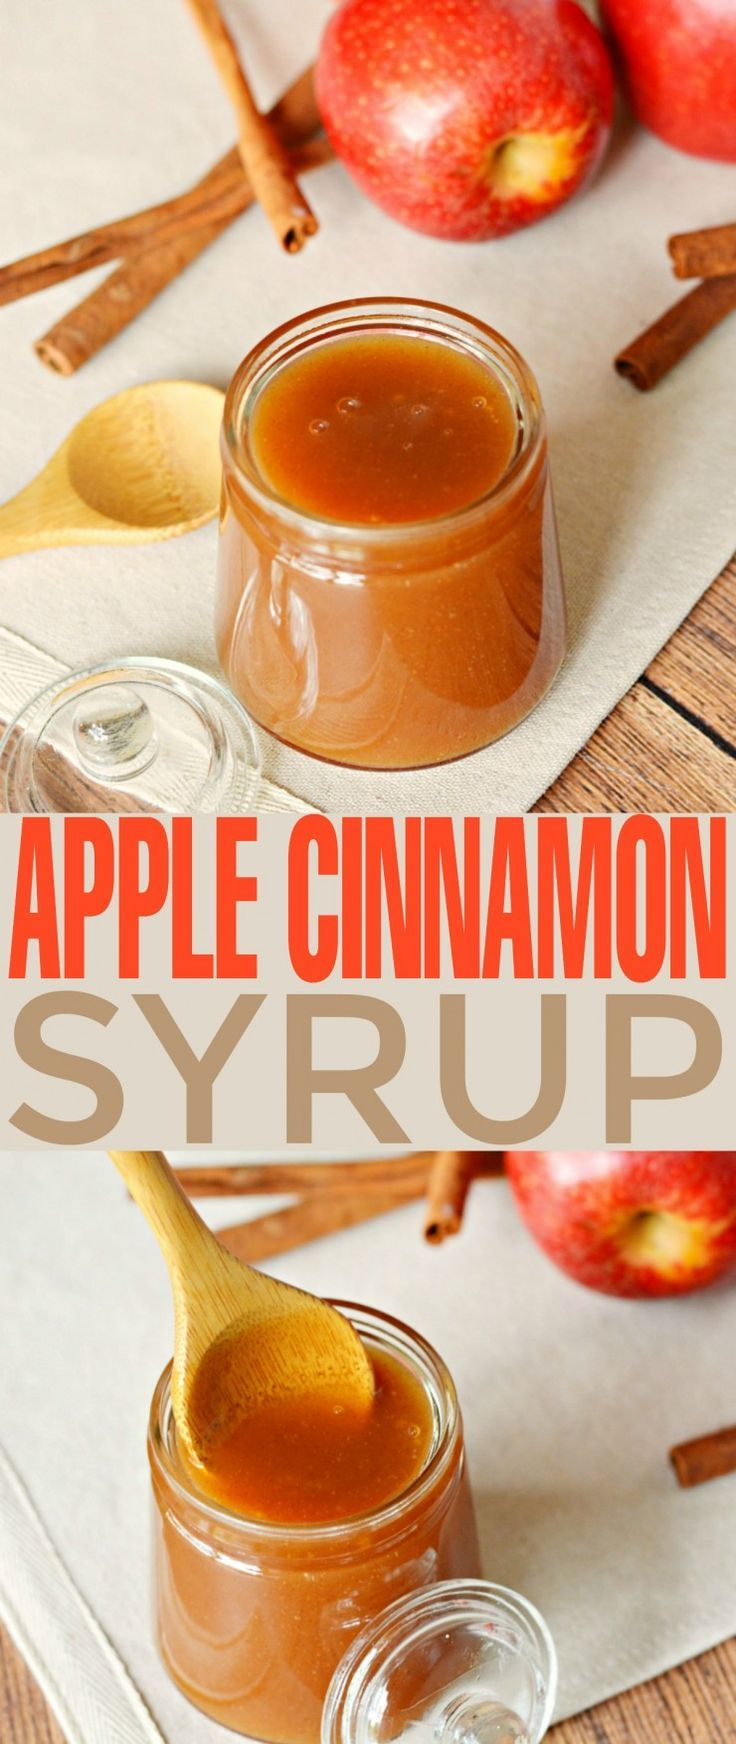 This Apple Cinnamon Syrup is fabulous poured over pancakes, waffles, cheesecakes and ice cream. It's a sweet autumn treat that is super versatile as a syrup and sauce.